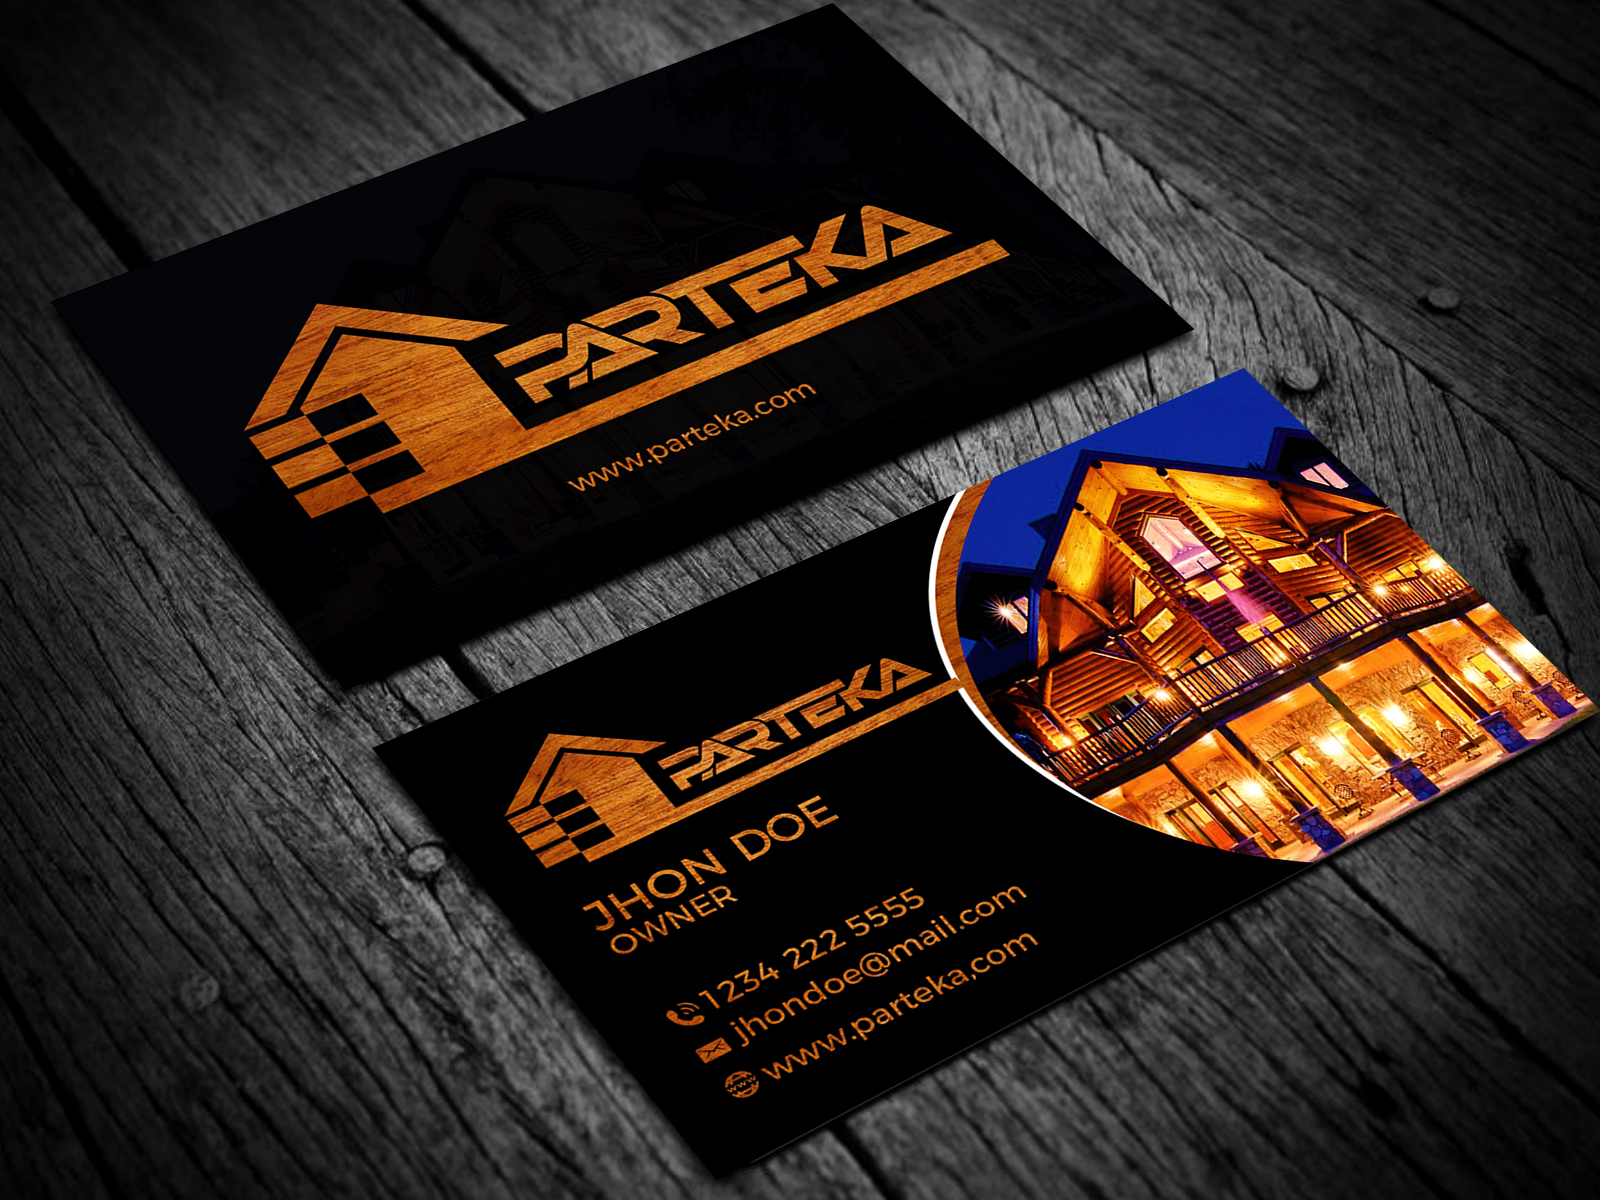 I Design Professional Business Cards in 12 Hour